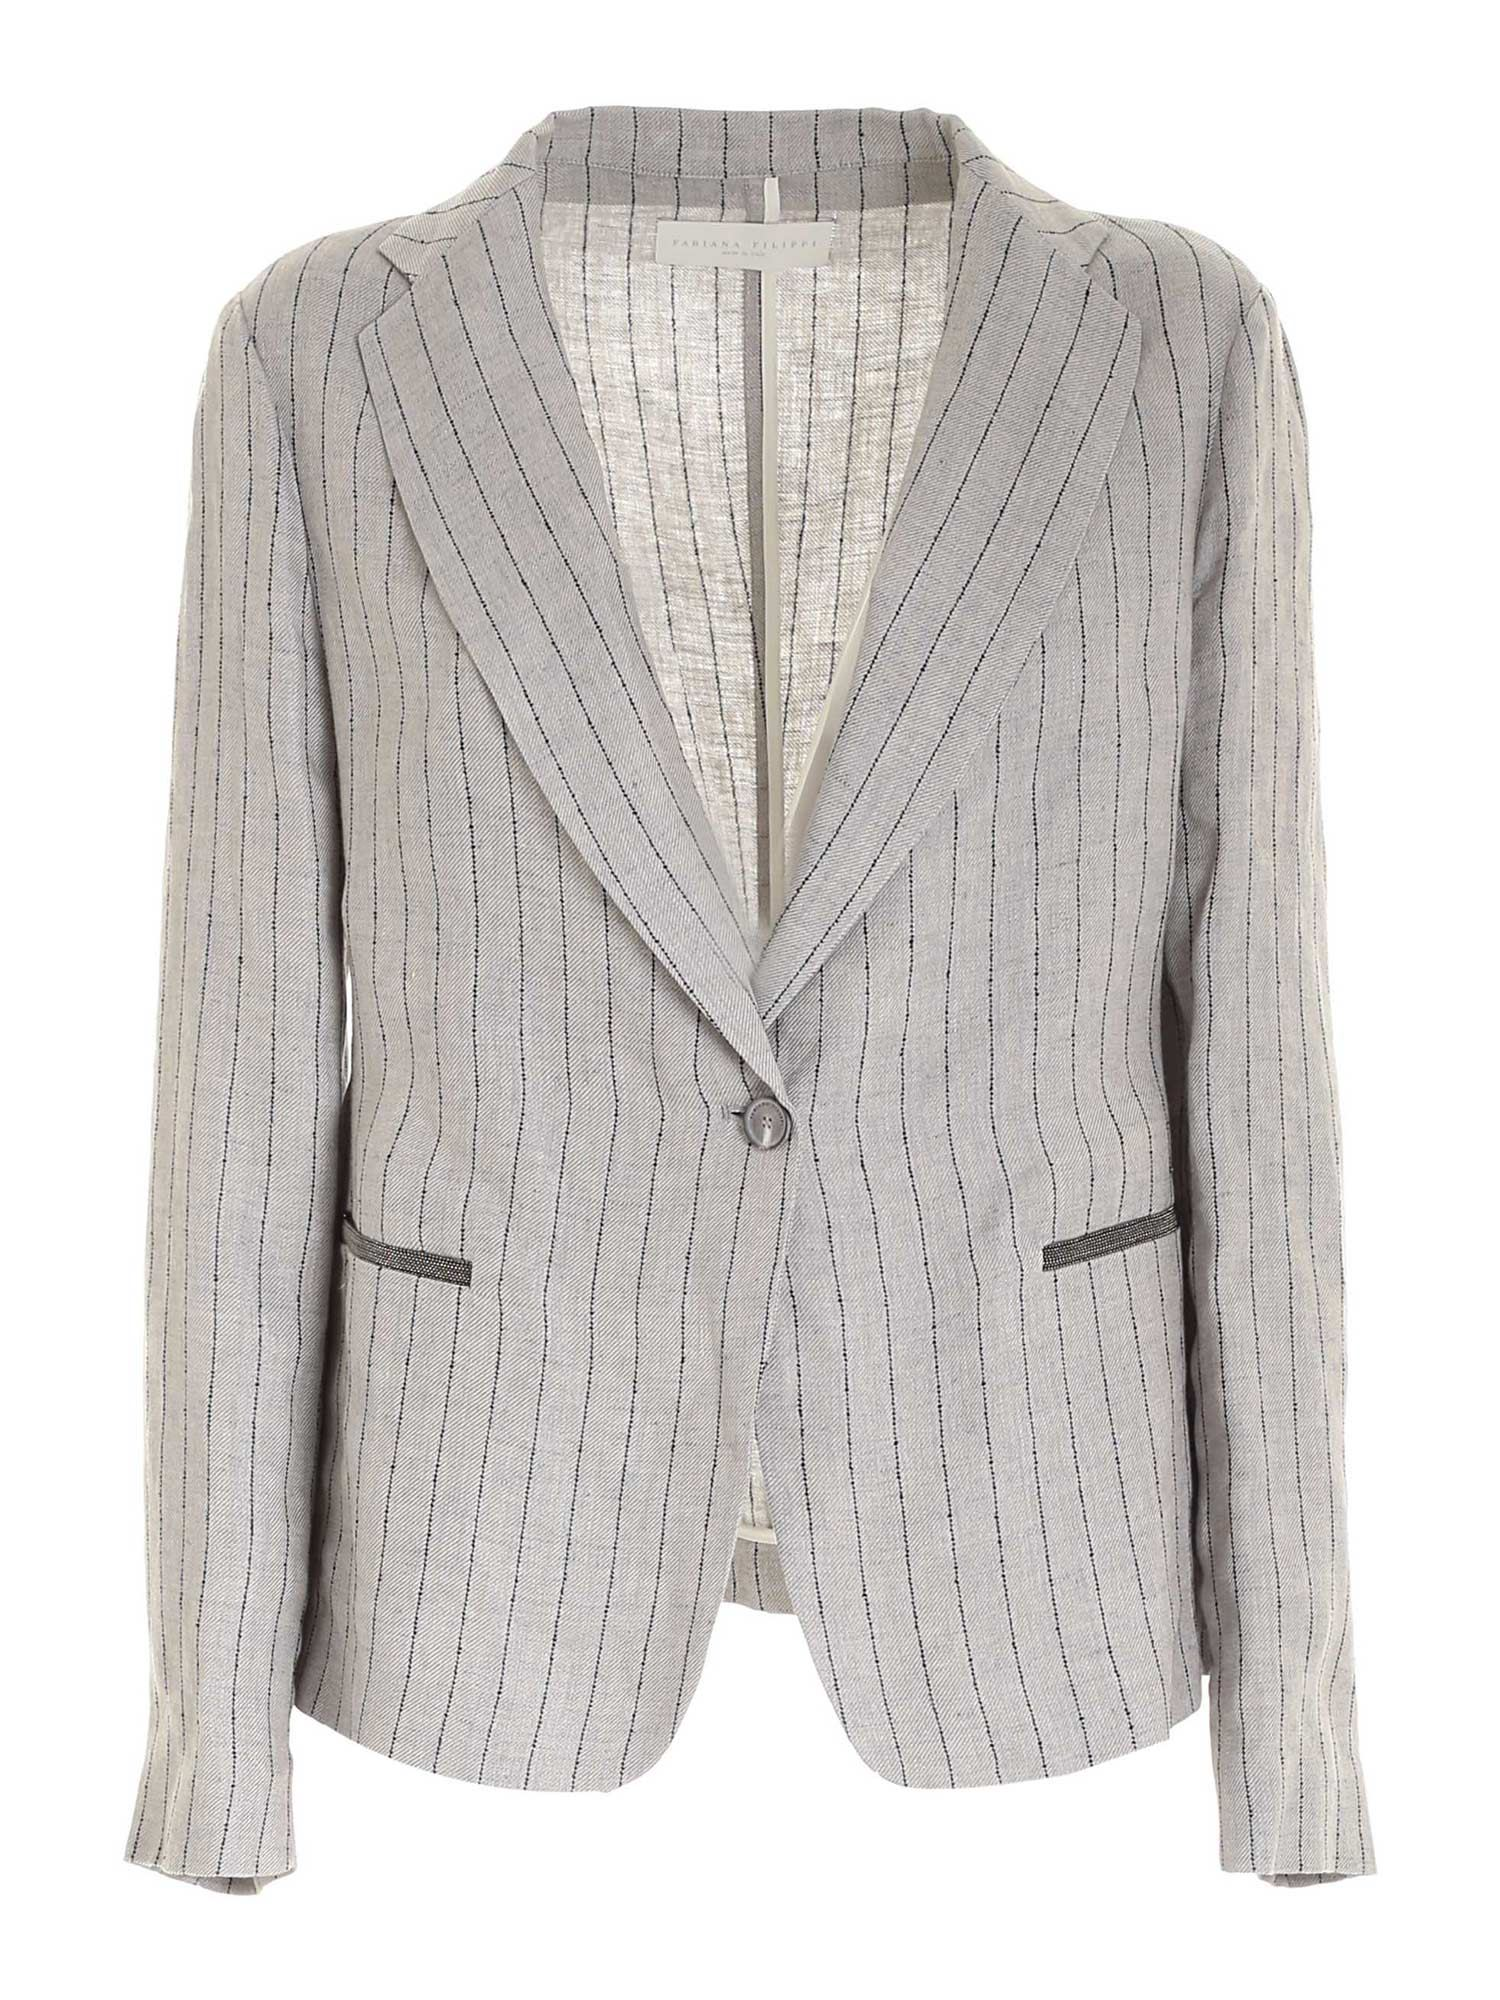 Fabiana Filippi MICRO BEADS JACKET IN GREY